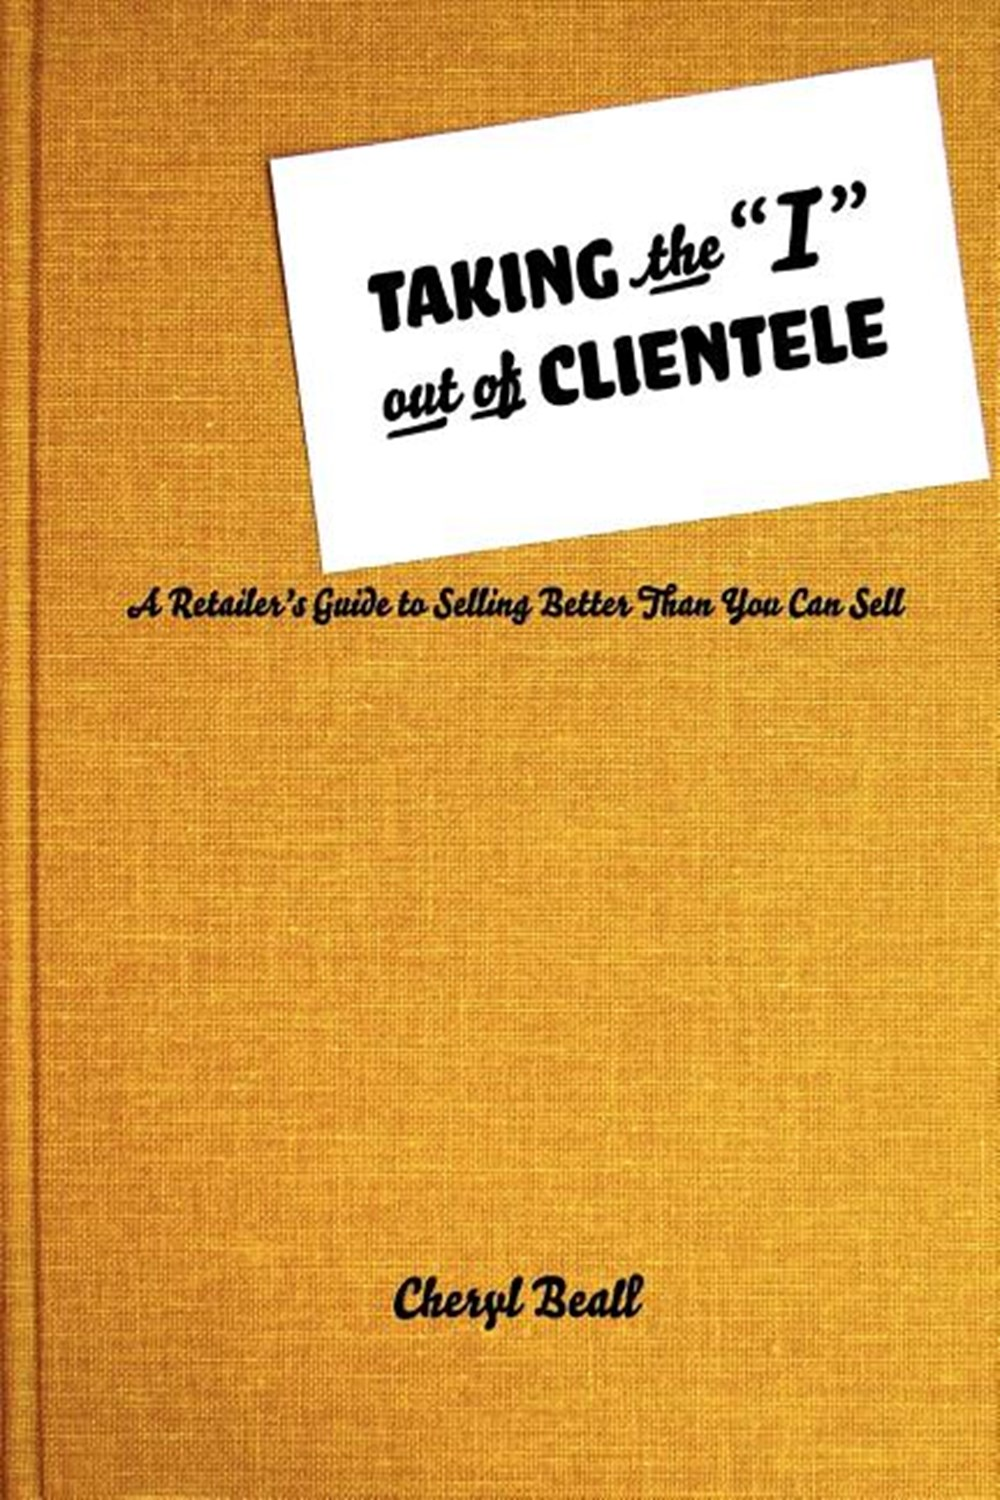 Taking the I Out of Clientele A Retailer's Guide to Selling Better Than You Can Sell